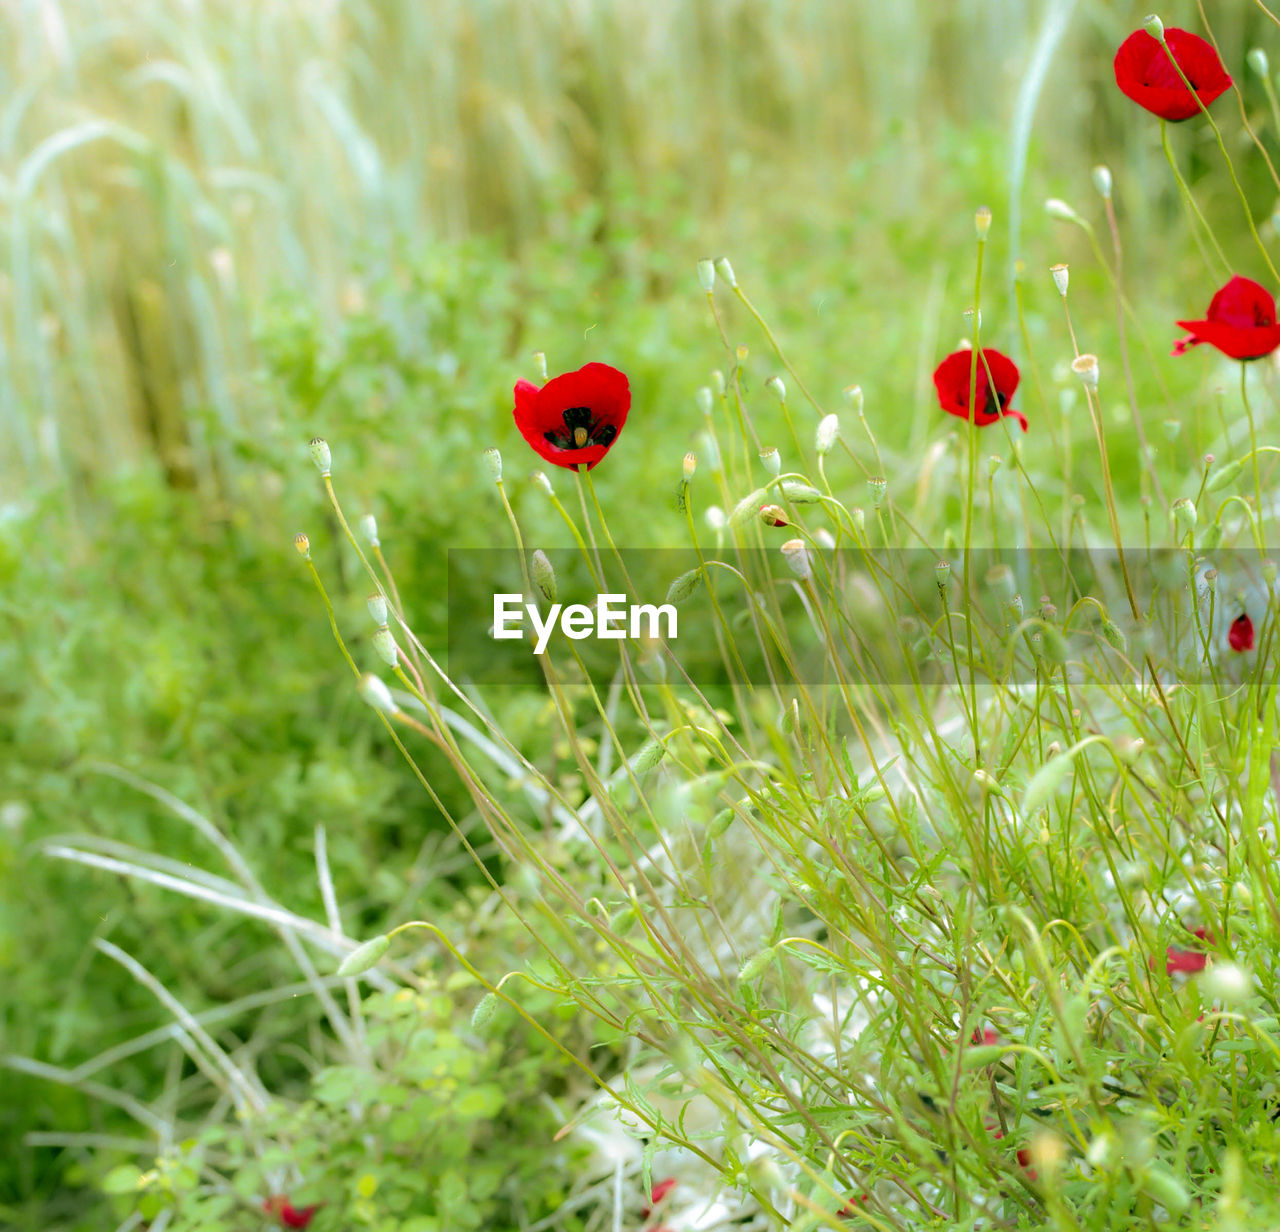 red, grass, ladybug, poppy, insect, growth, nature, flower, animal themes, field, plant, animals in the wild, green color, meadow, no people, day, outdoors, one animal, close-up, fragility, tiny, beauty in nature, freshness